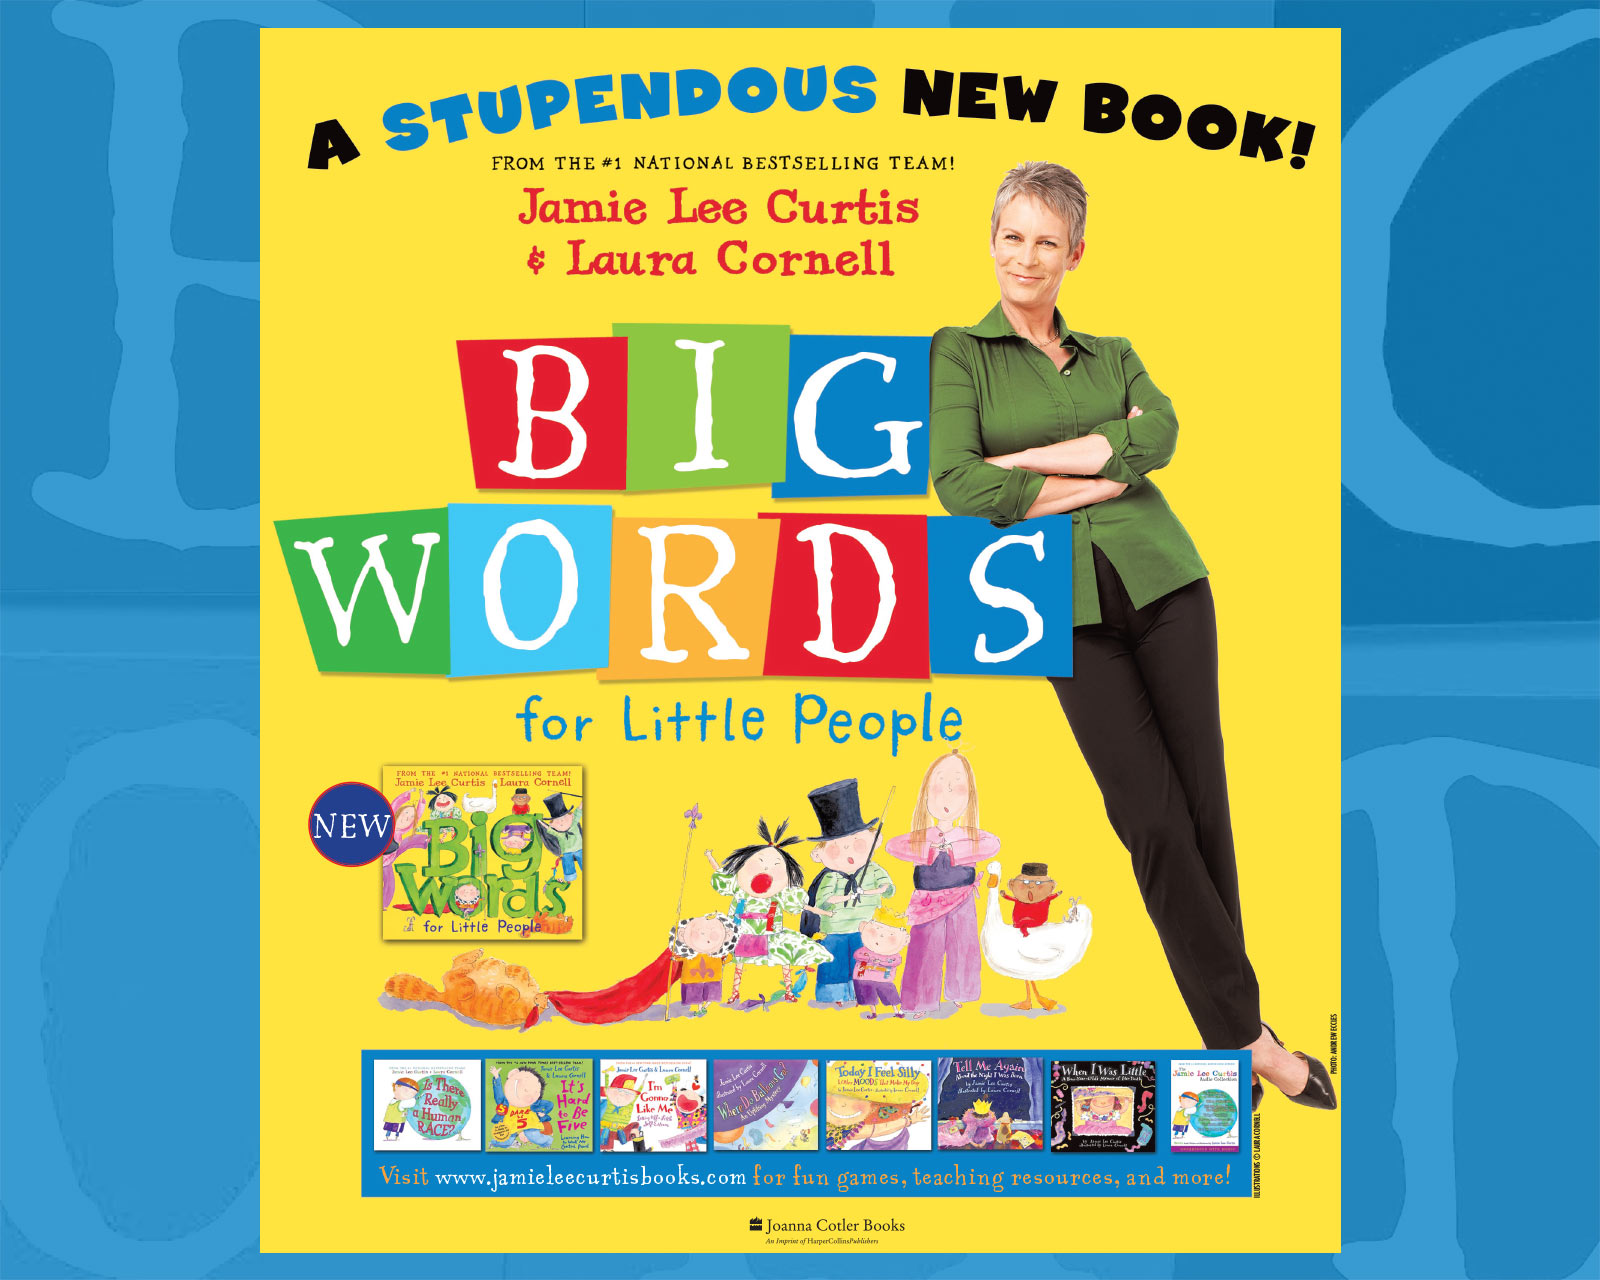 Jamie Lee Curtis - Big Words for Little People - New York Times Book Review